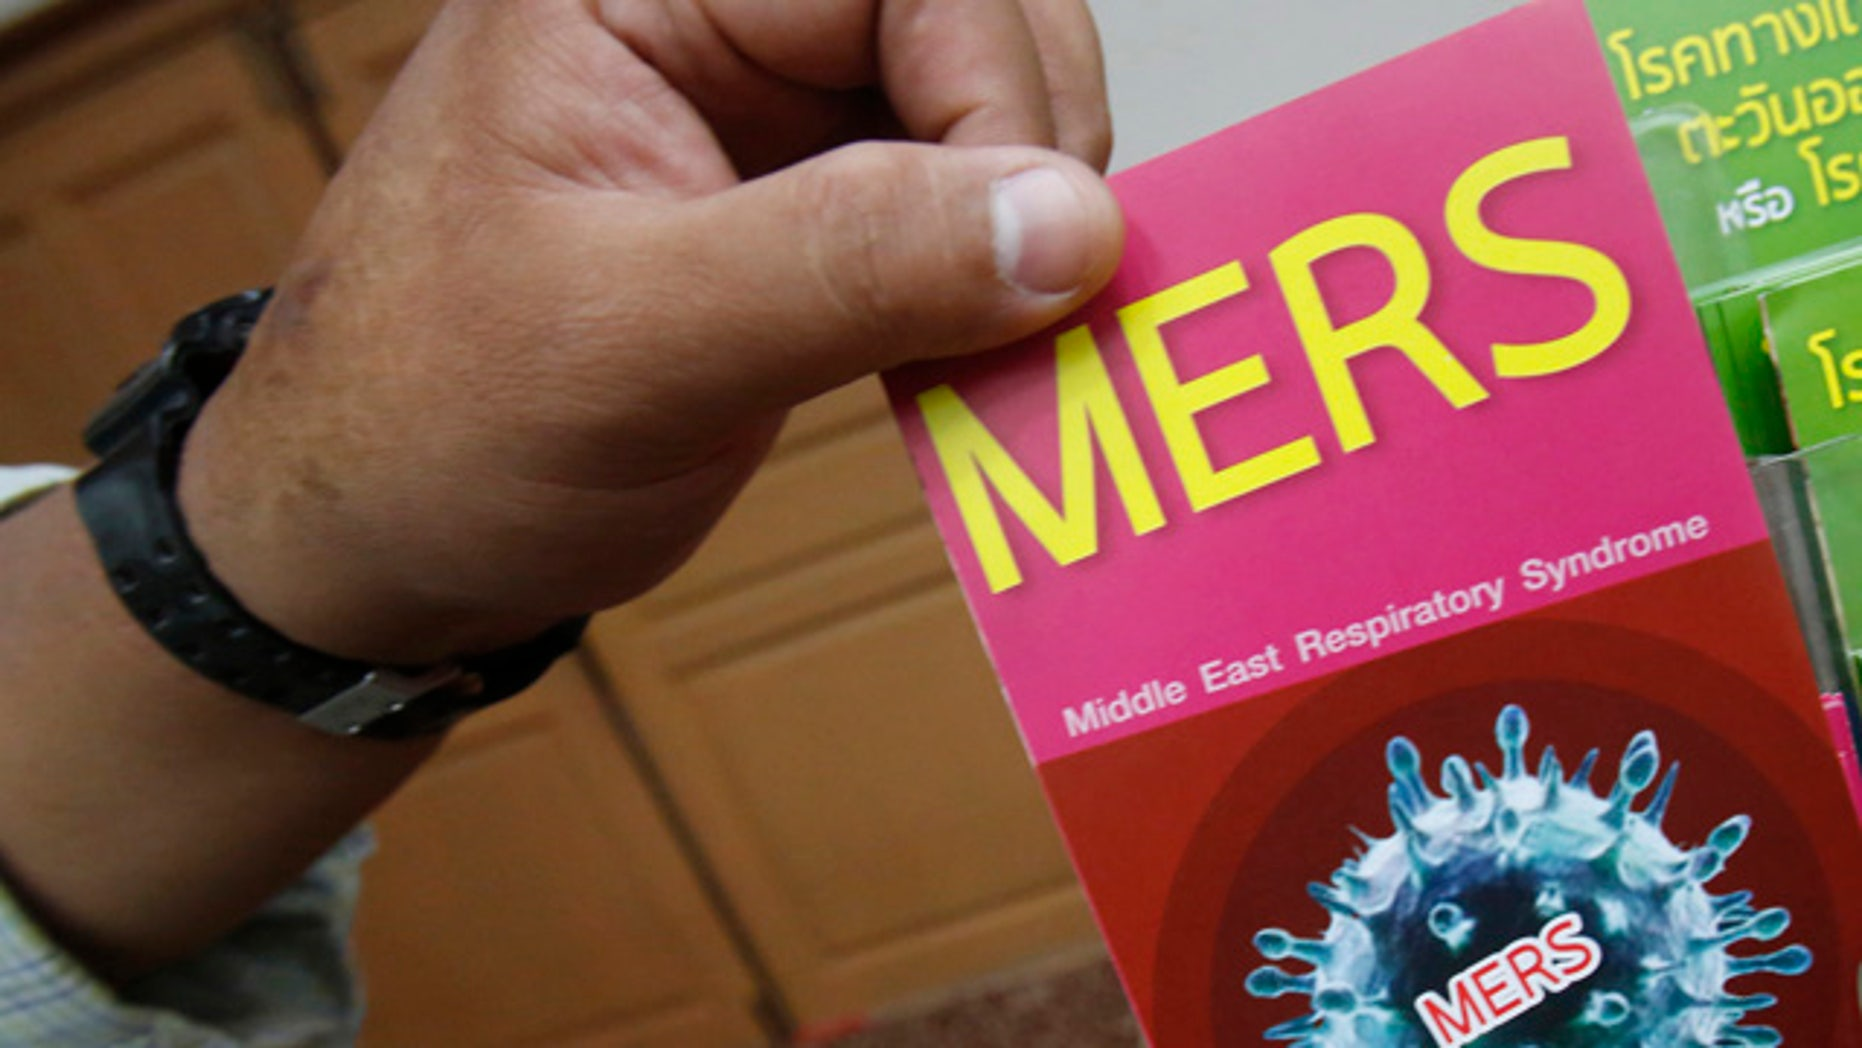 June 18, 2015: A Thai officer takes a flyer after Public Health Minister Rajata Rajatanavin's press conference in Bangkok. Thailand says it has confirmed its first known case of the deadly MERS virus, a man who arrived from a Middle Eastern country for treatment of a heart condition. (AP Photo/Sakchai Lalit)